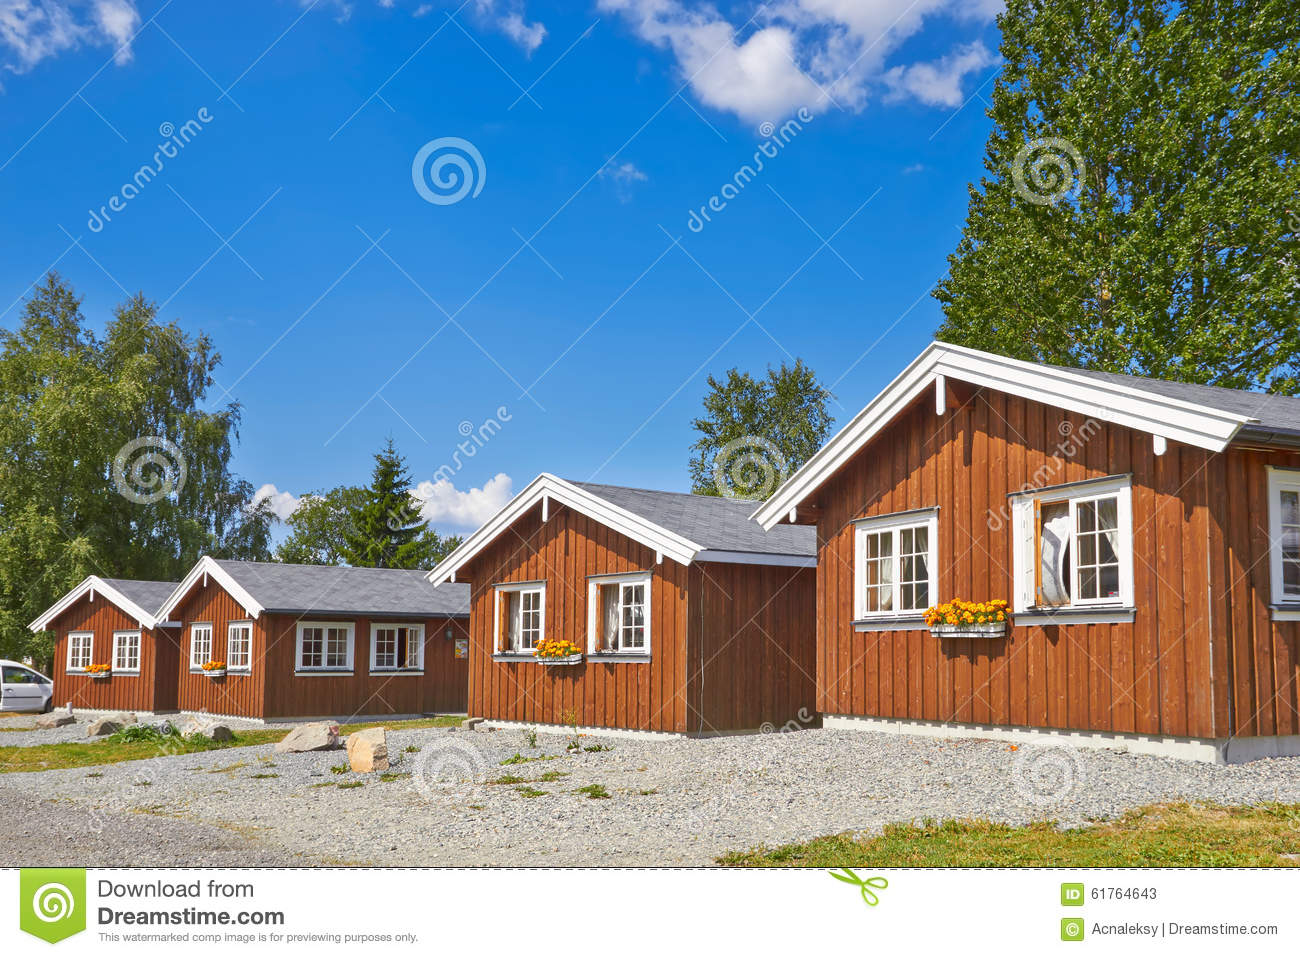 Coastal wooden houses stock photo image 61764643 for Norway wooden houses